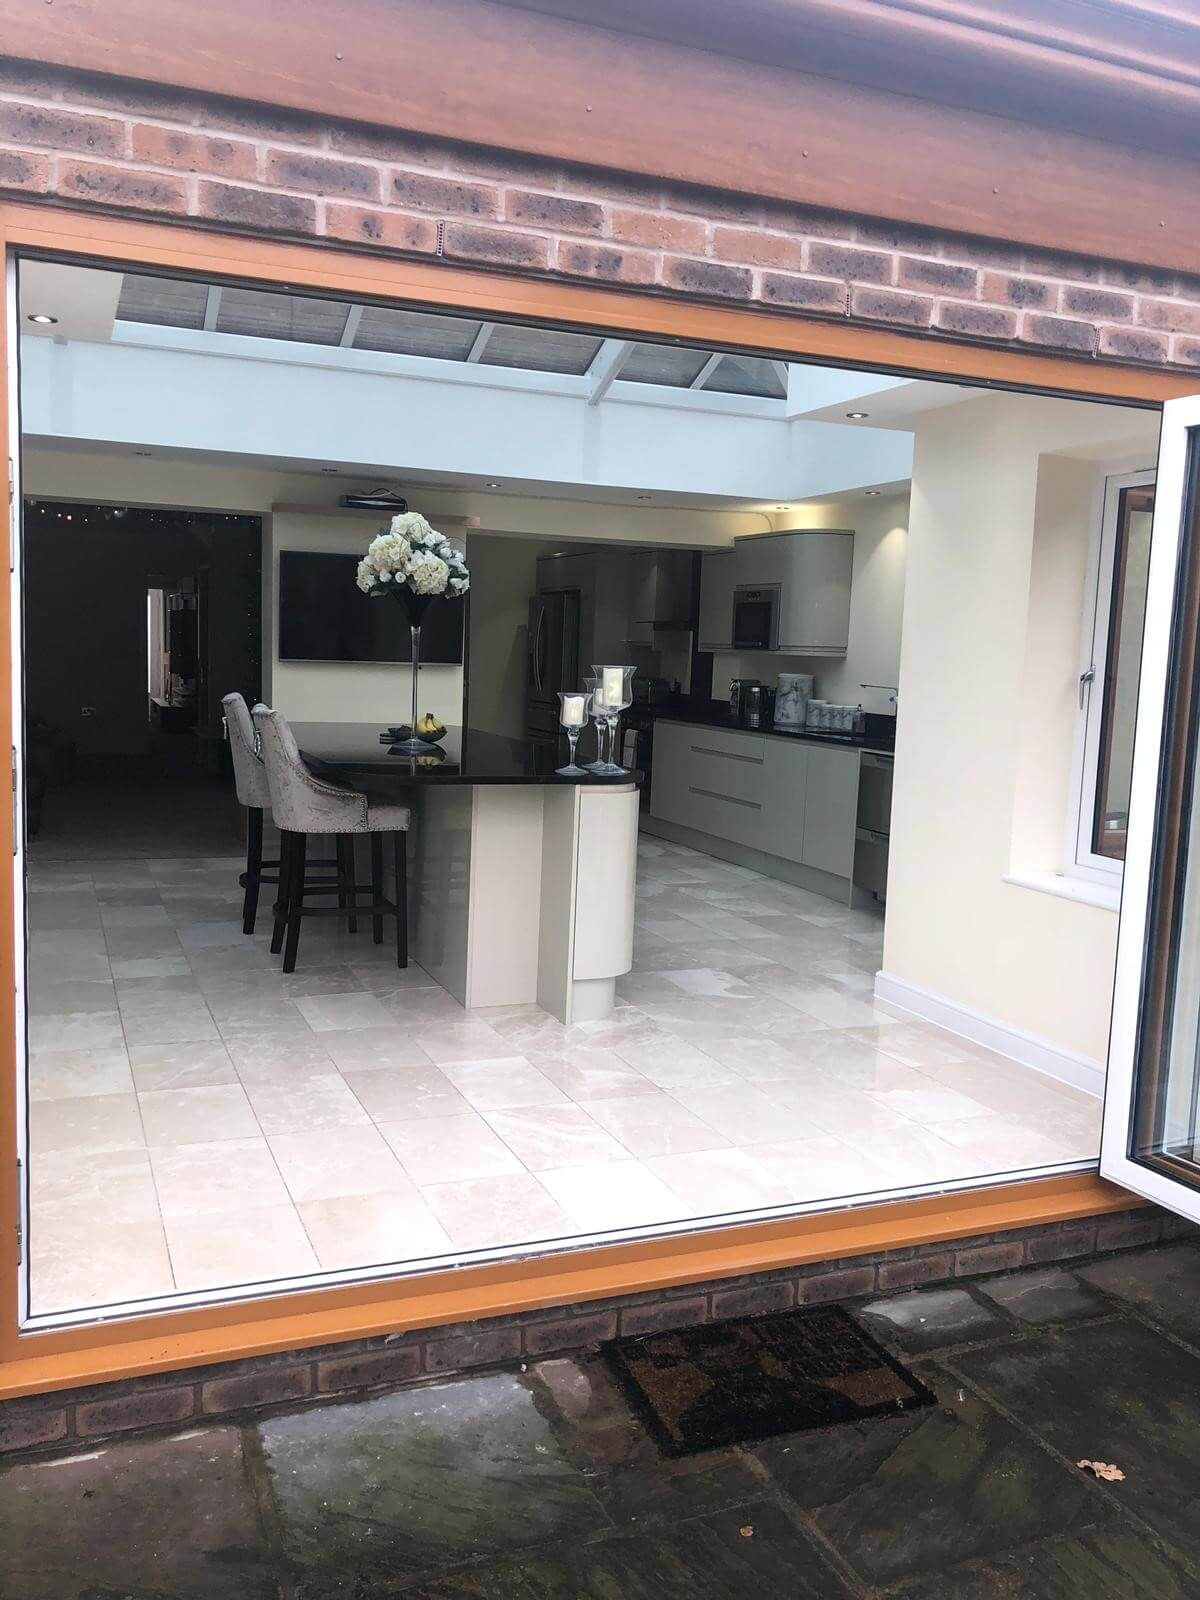 bi-folds, orangery, extension, aughton, ormskirk, merseyside, celsius home improvements